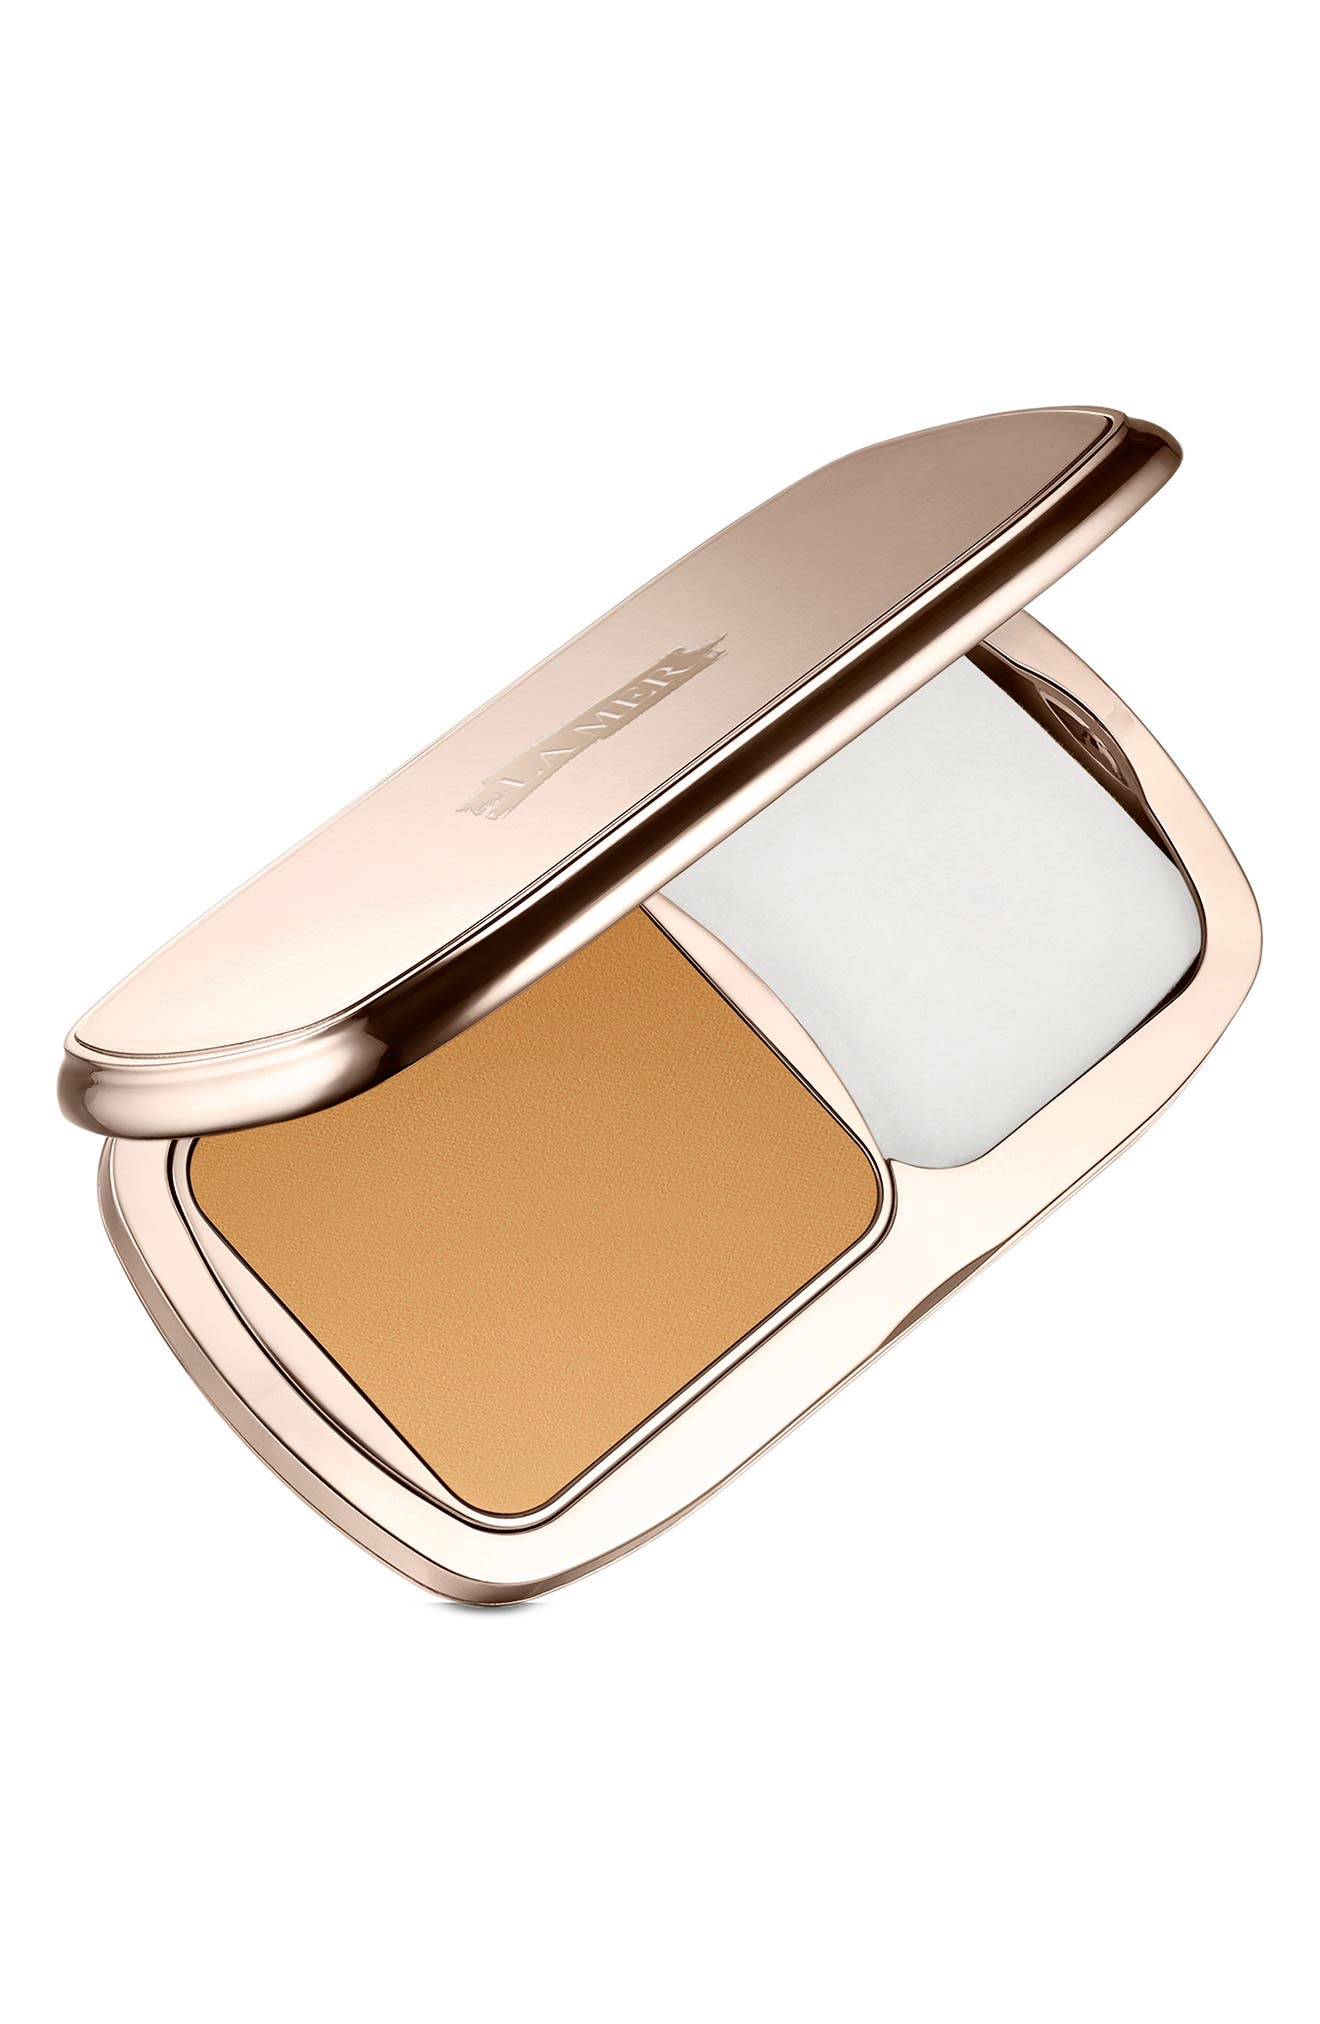 The Soft Moisture Powder Foundation Compact SPF 30   Nordstrom